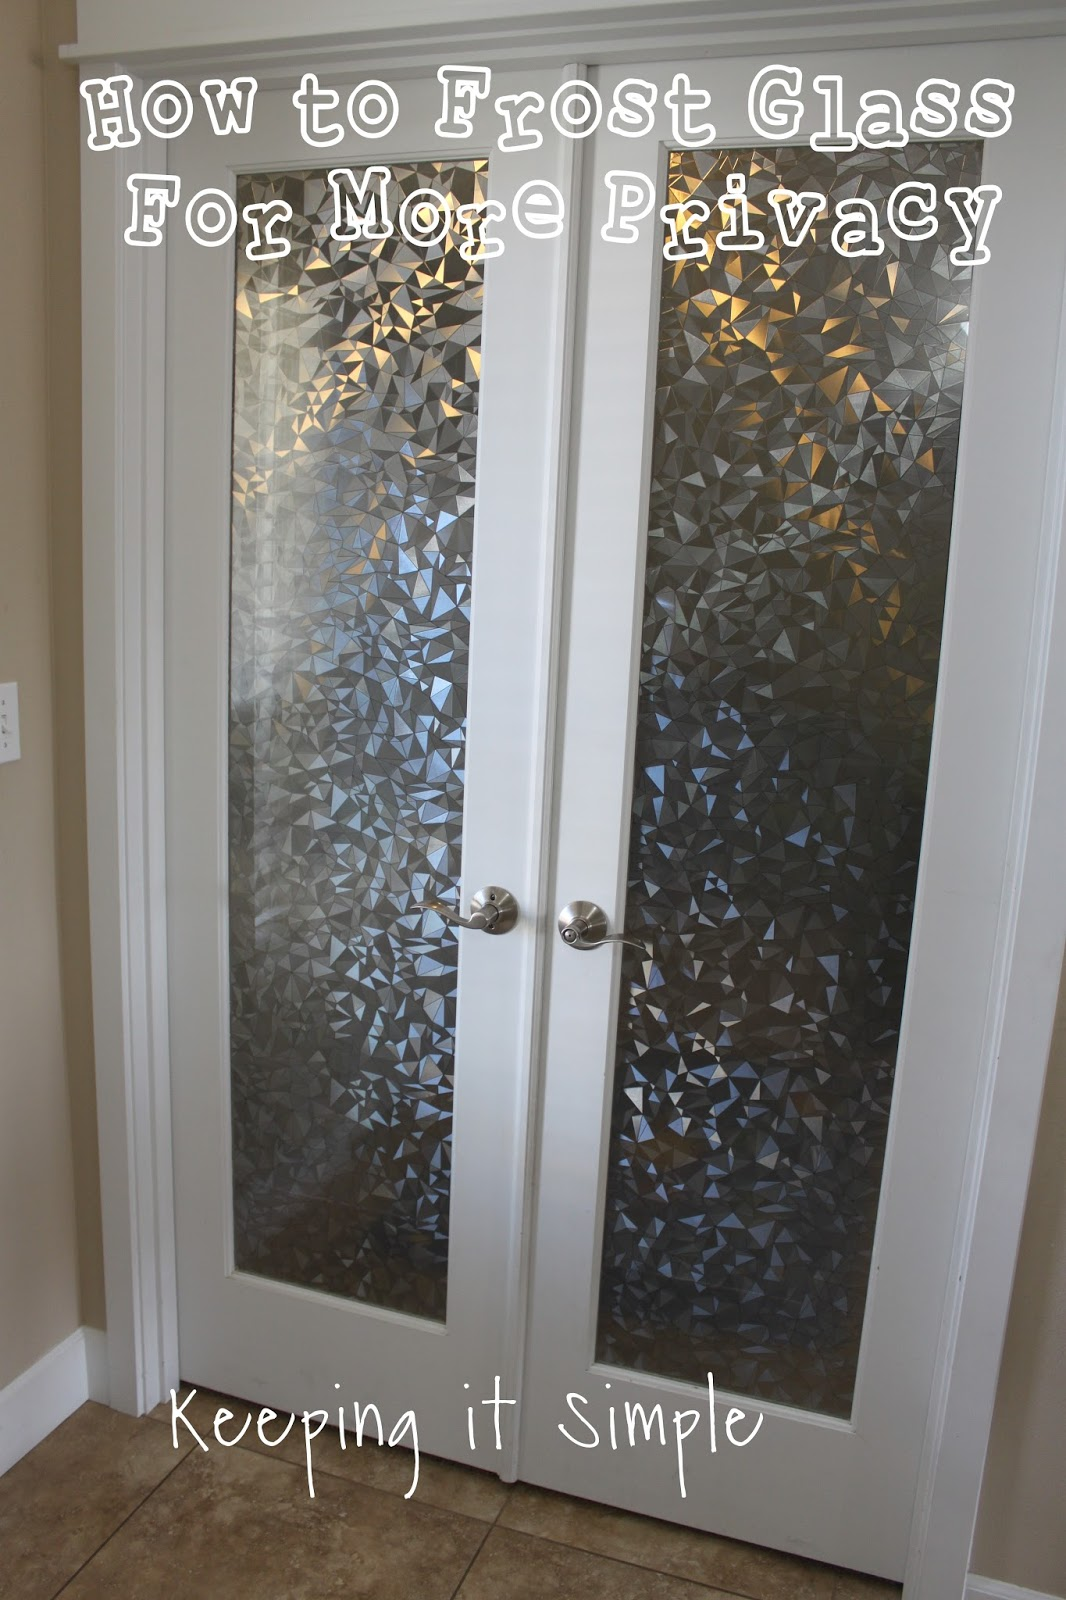 How To Frost Glass With Vinyl For More Privacy Keeping